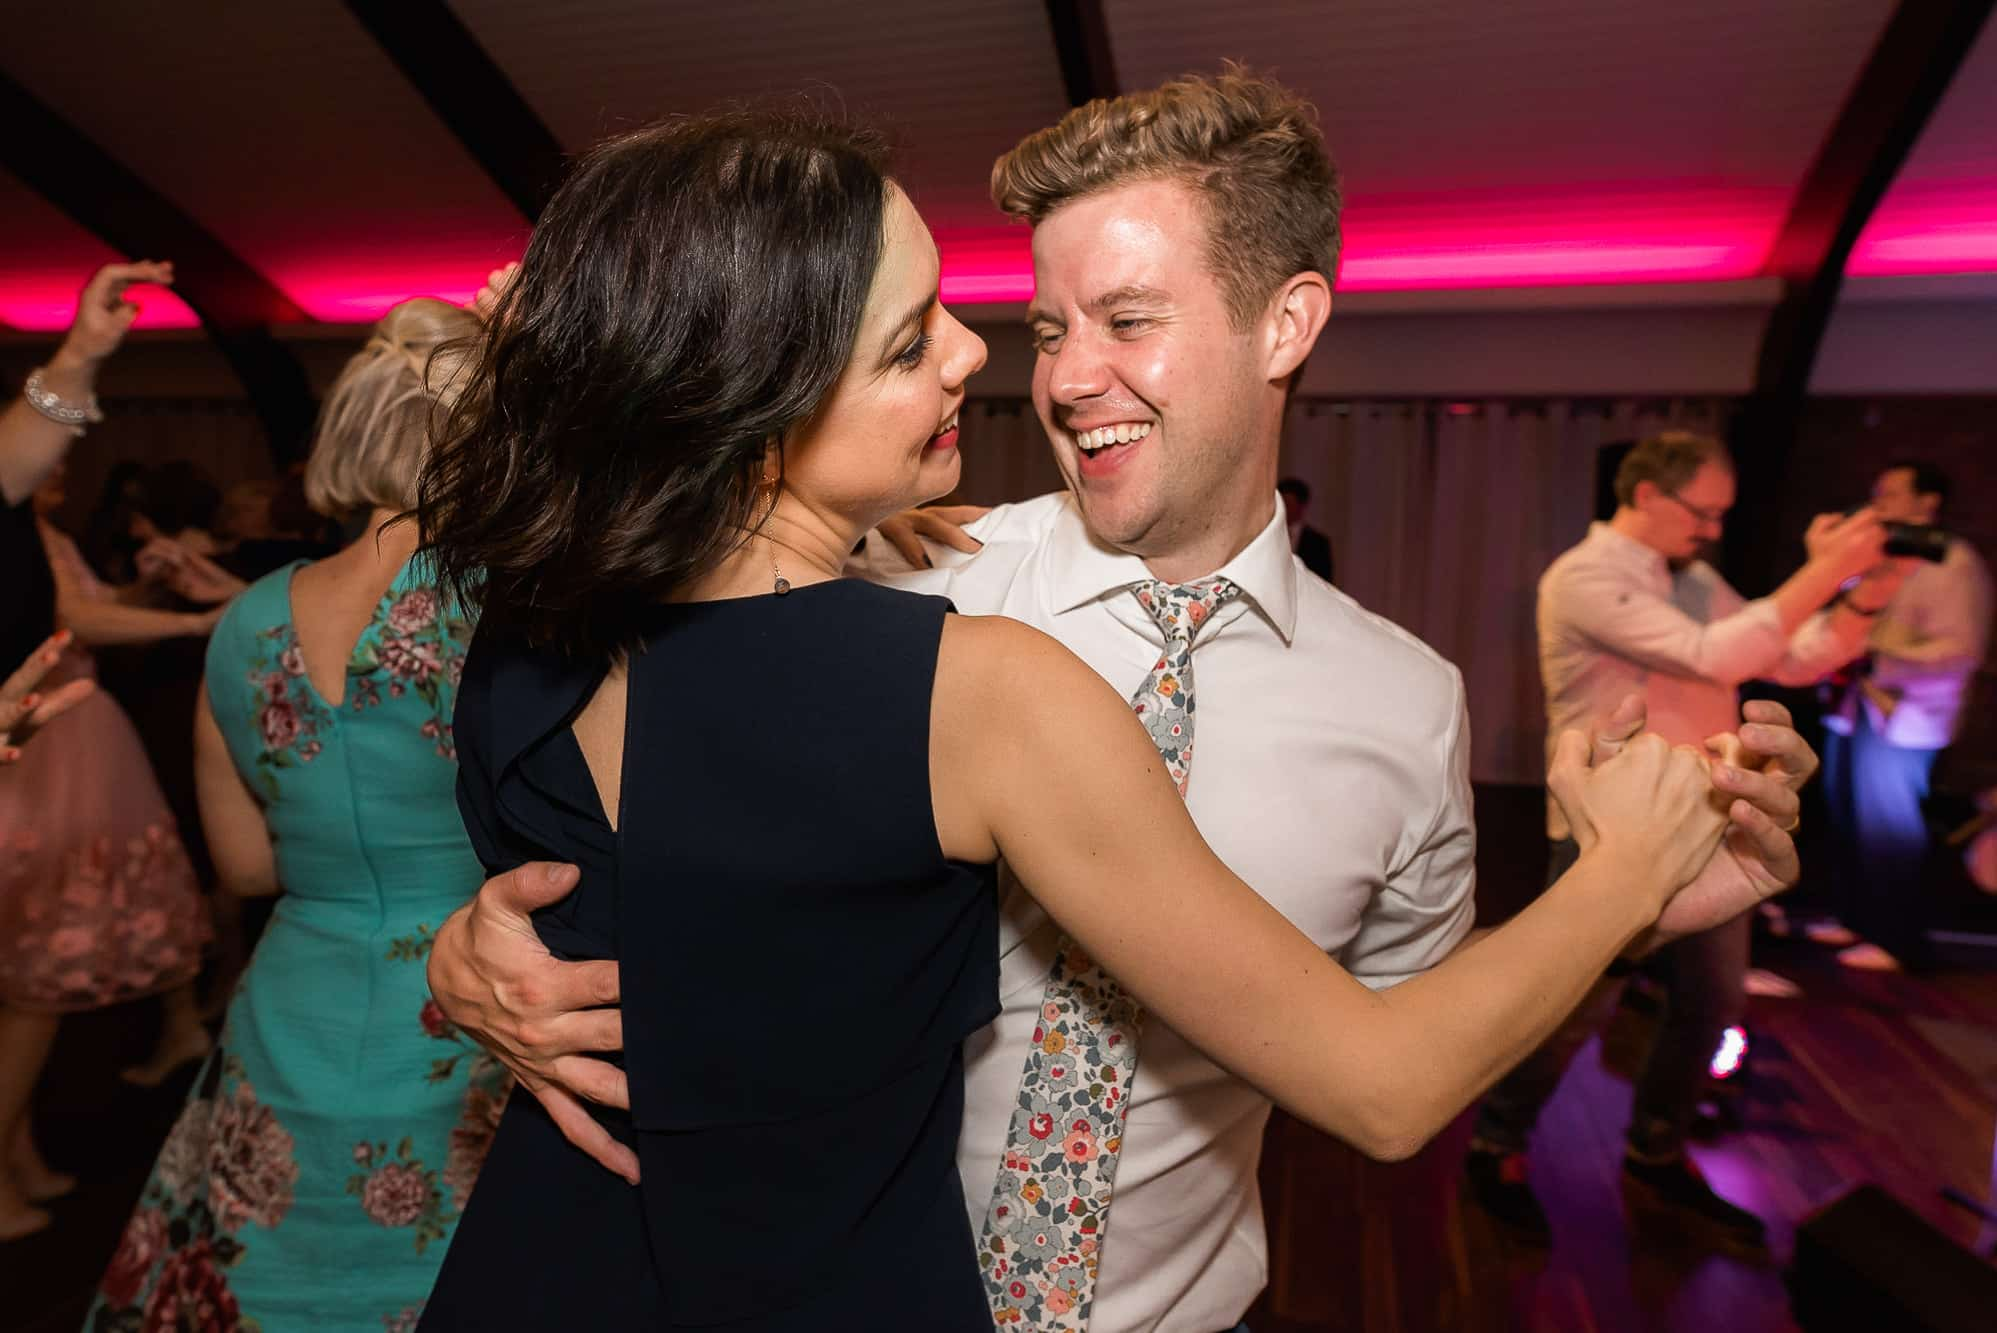 Dancing couple at Colshaw Hall